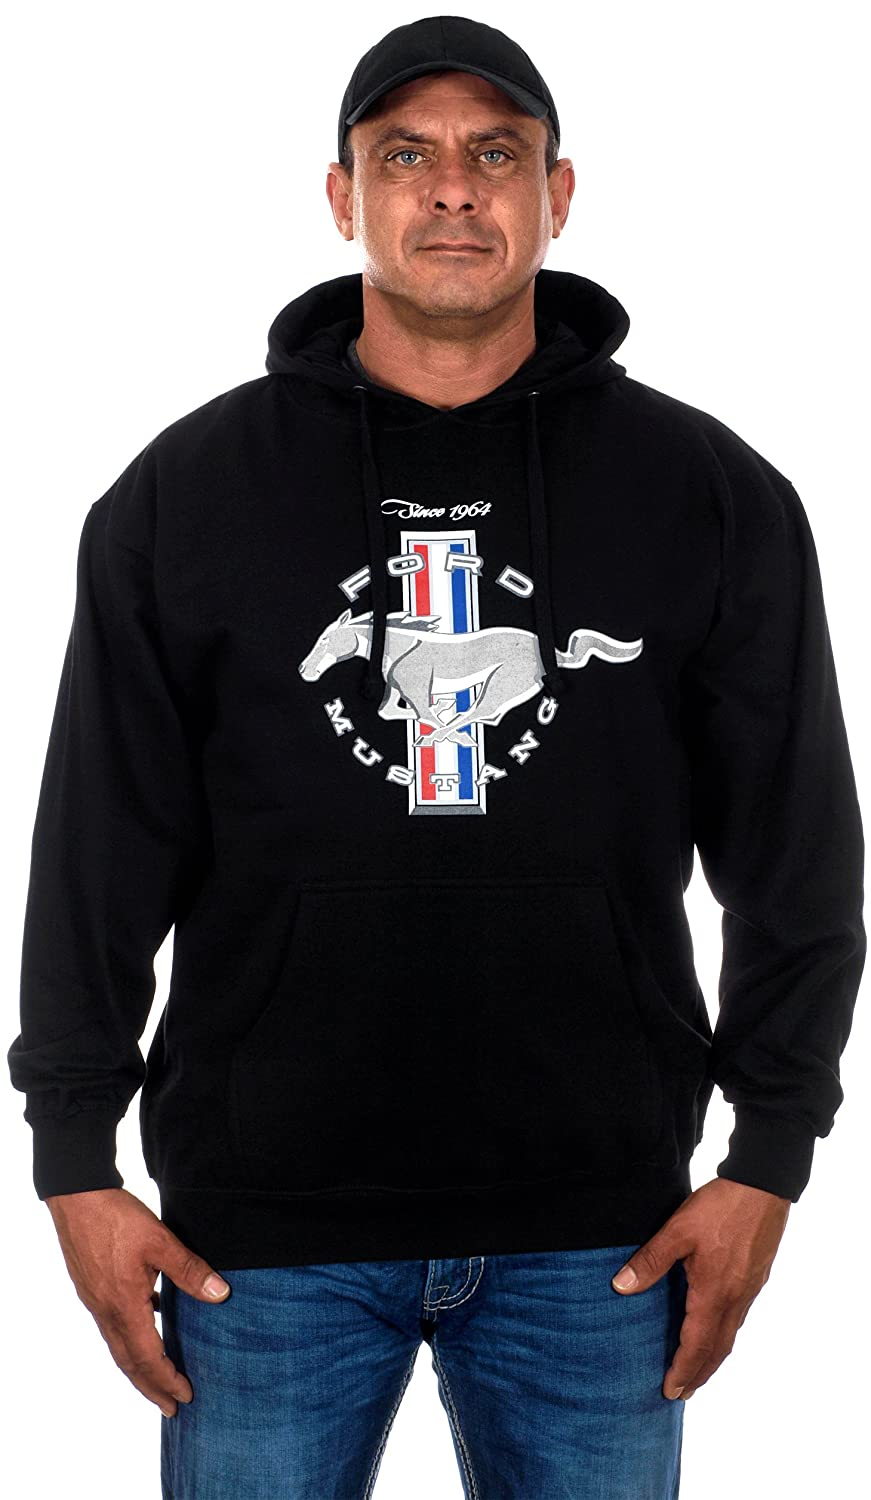 29d7b47ef Amazon.com  JH Design Men s Ford Mustang Hoodies in 5 Styles with American  Flag Sticker  Clothing